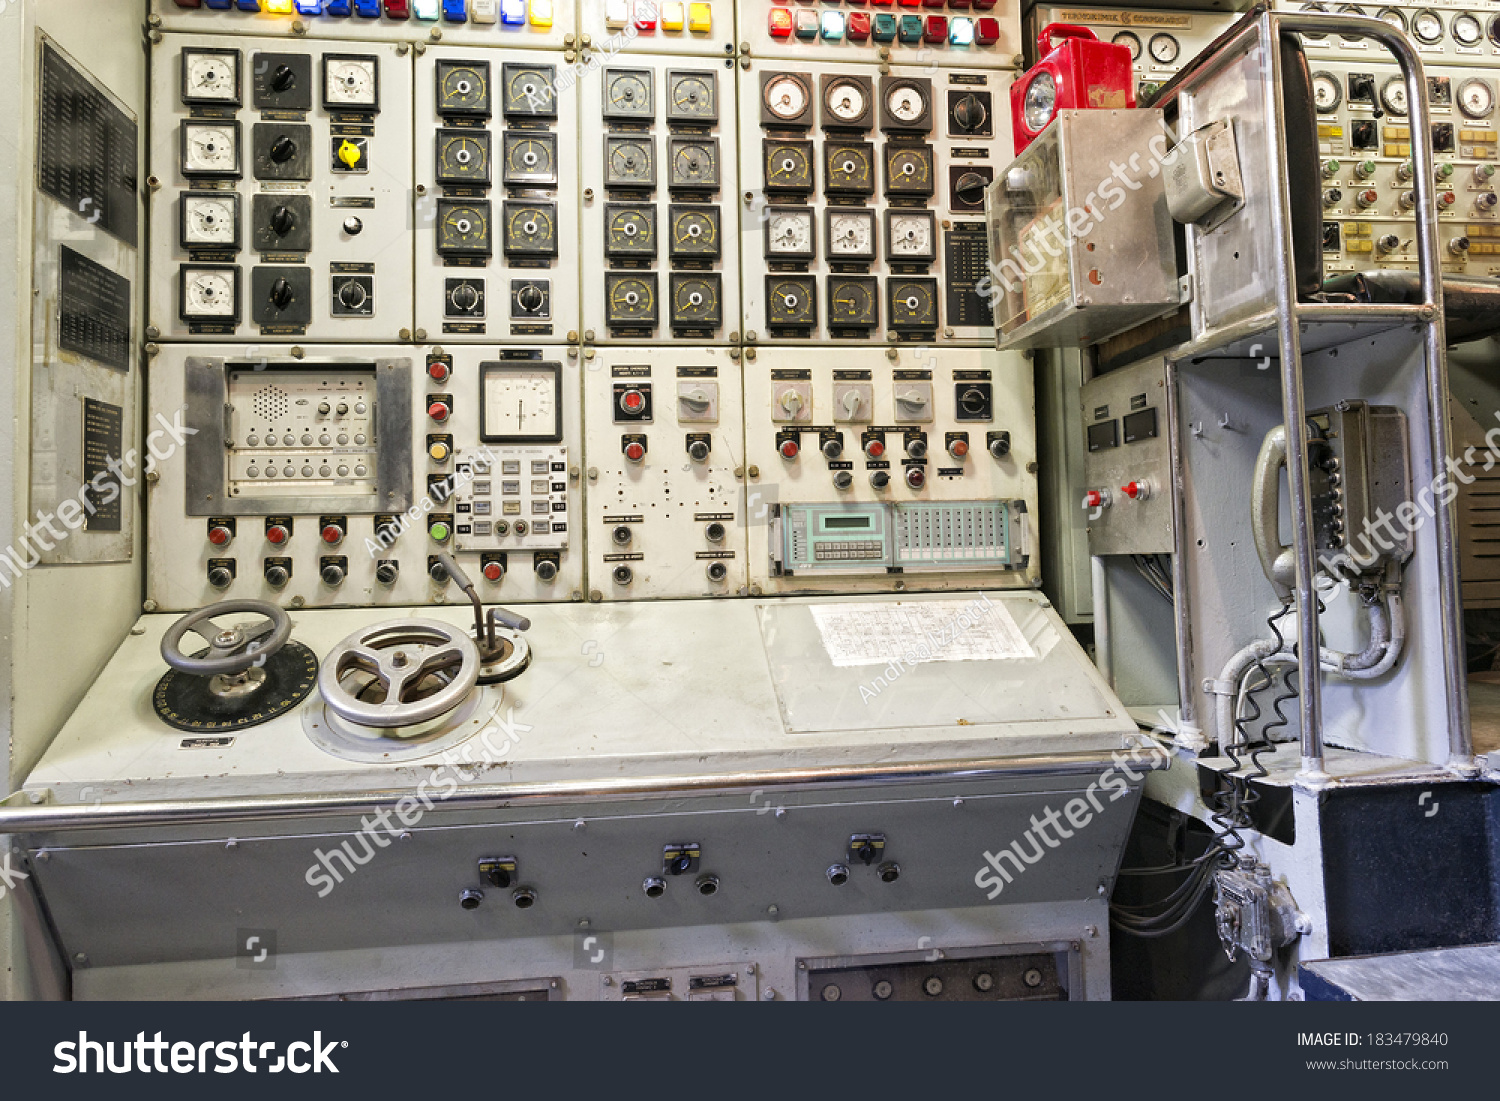 Old Control Panel Levers : Submarine old control panel detail stock photo